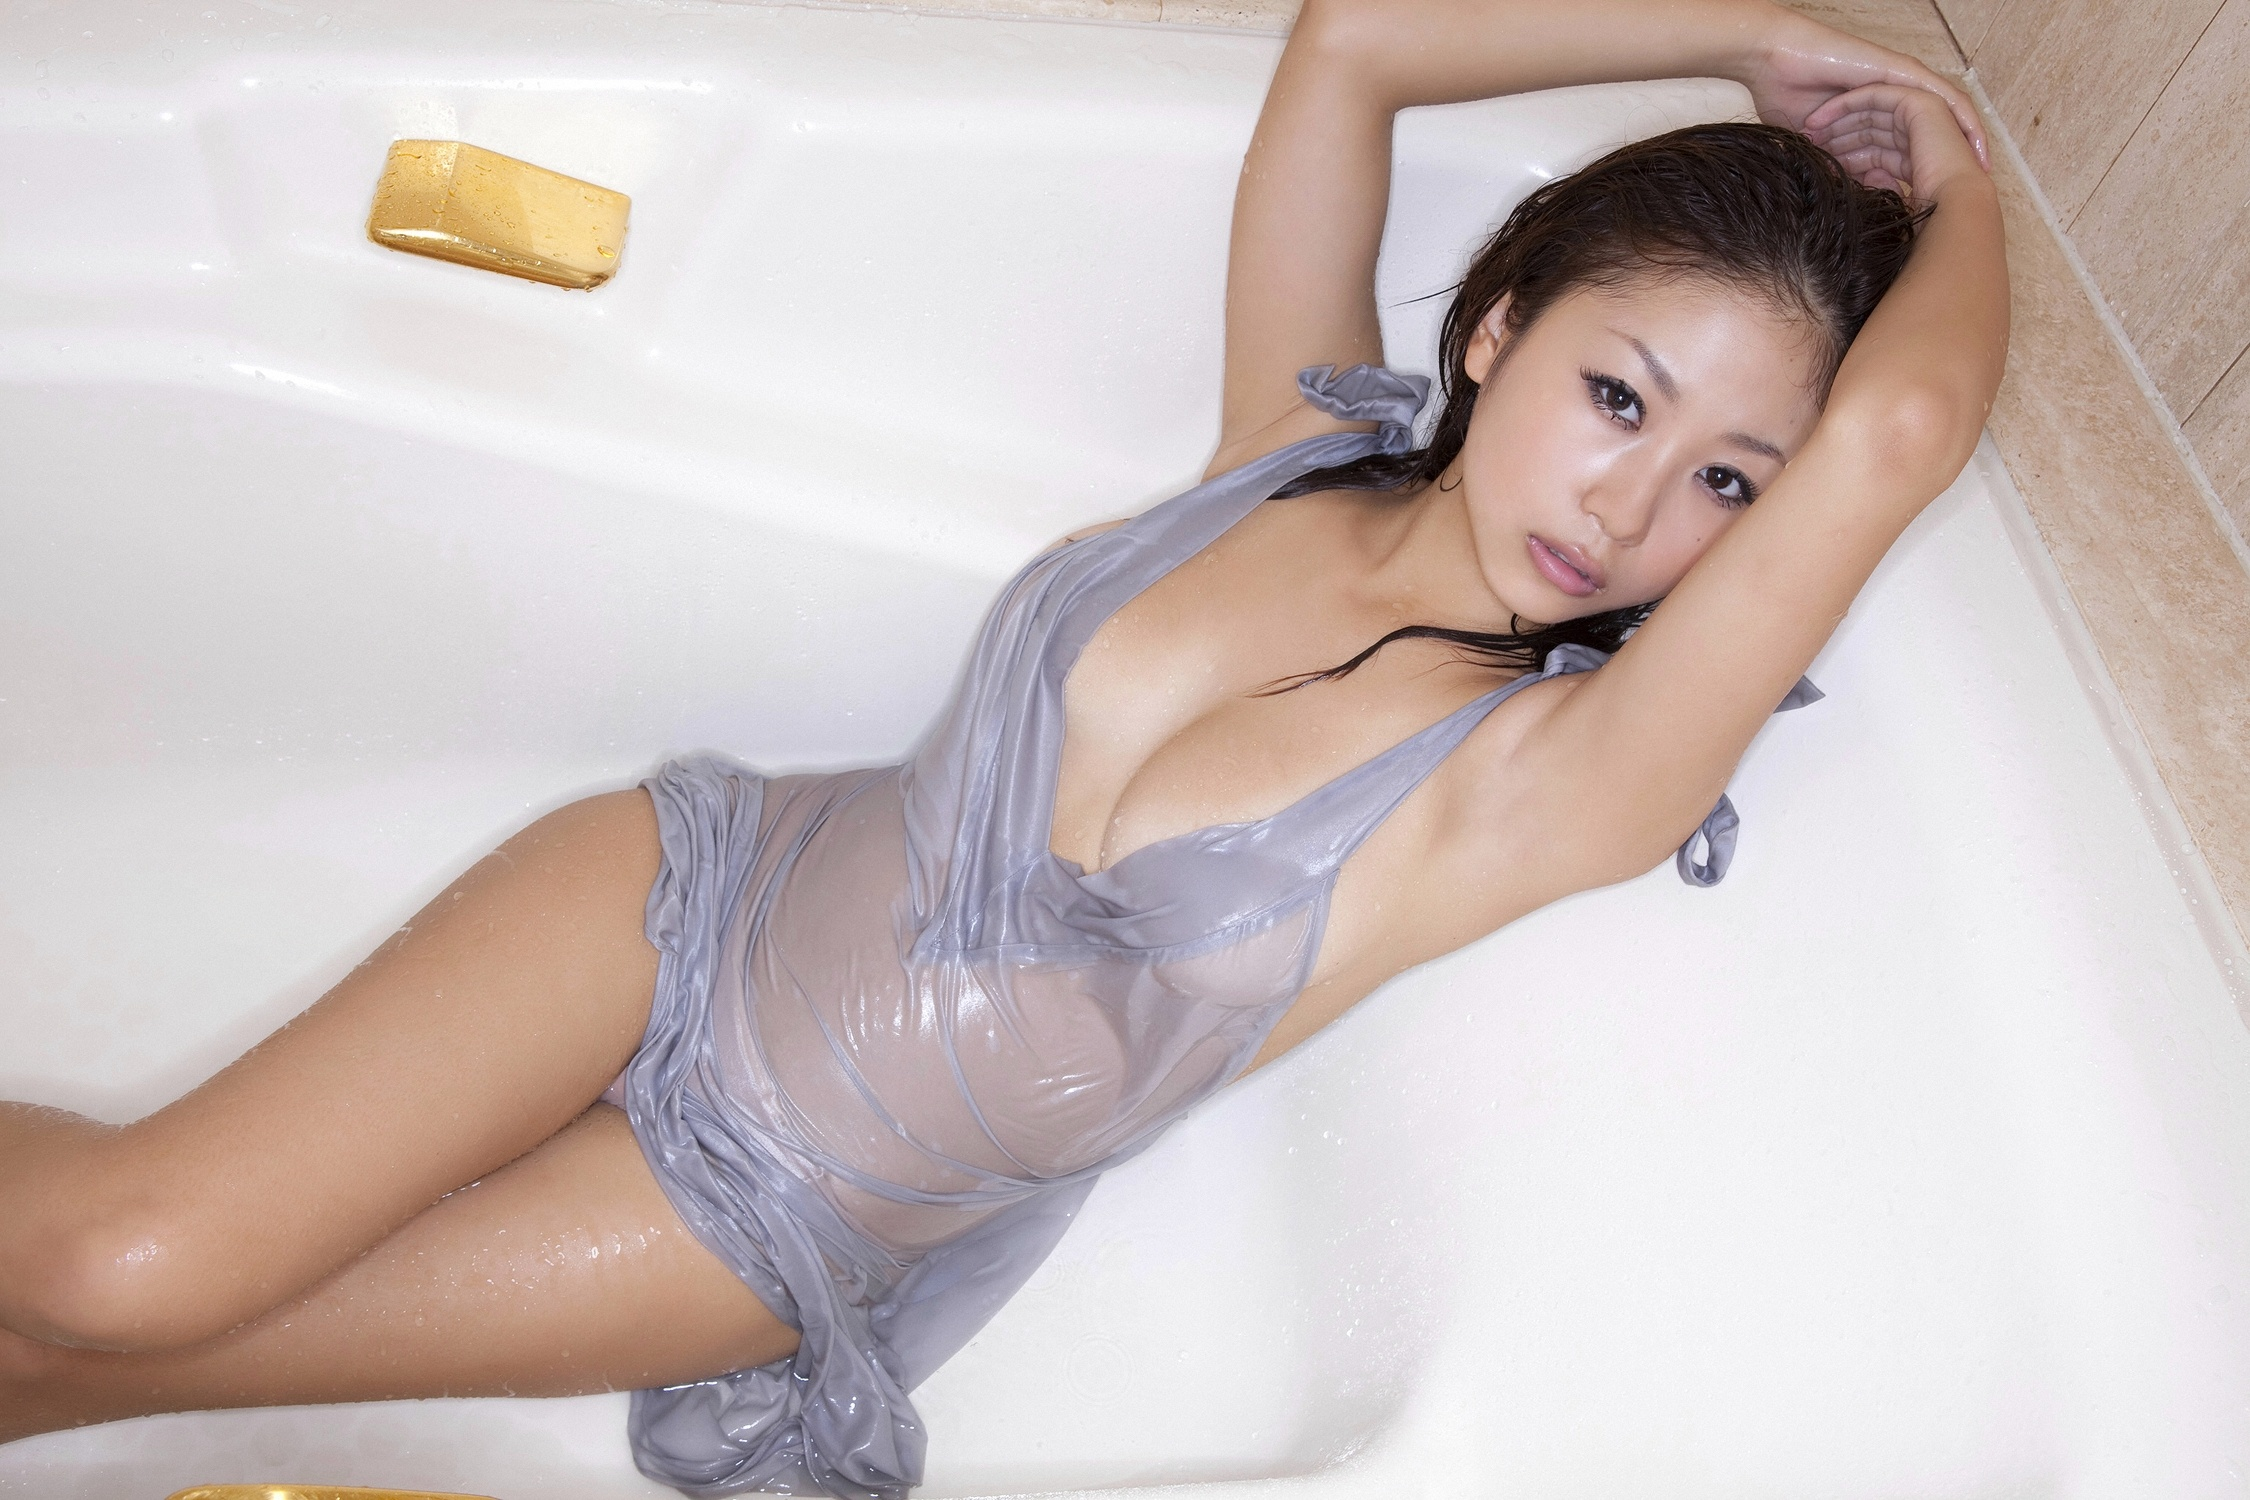 Everything, and Young asian girl sex outfit think